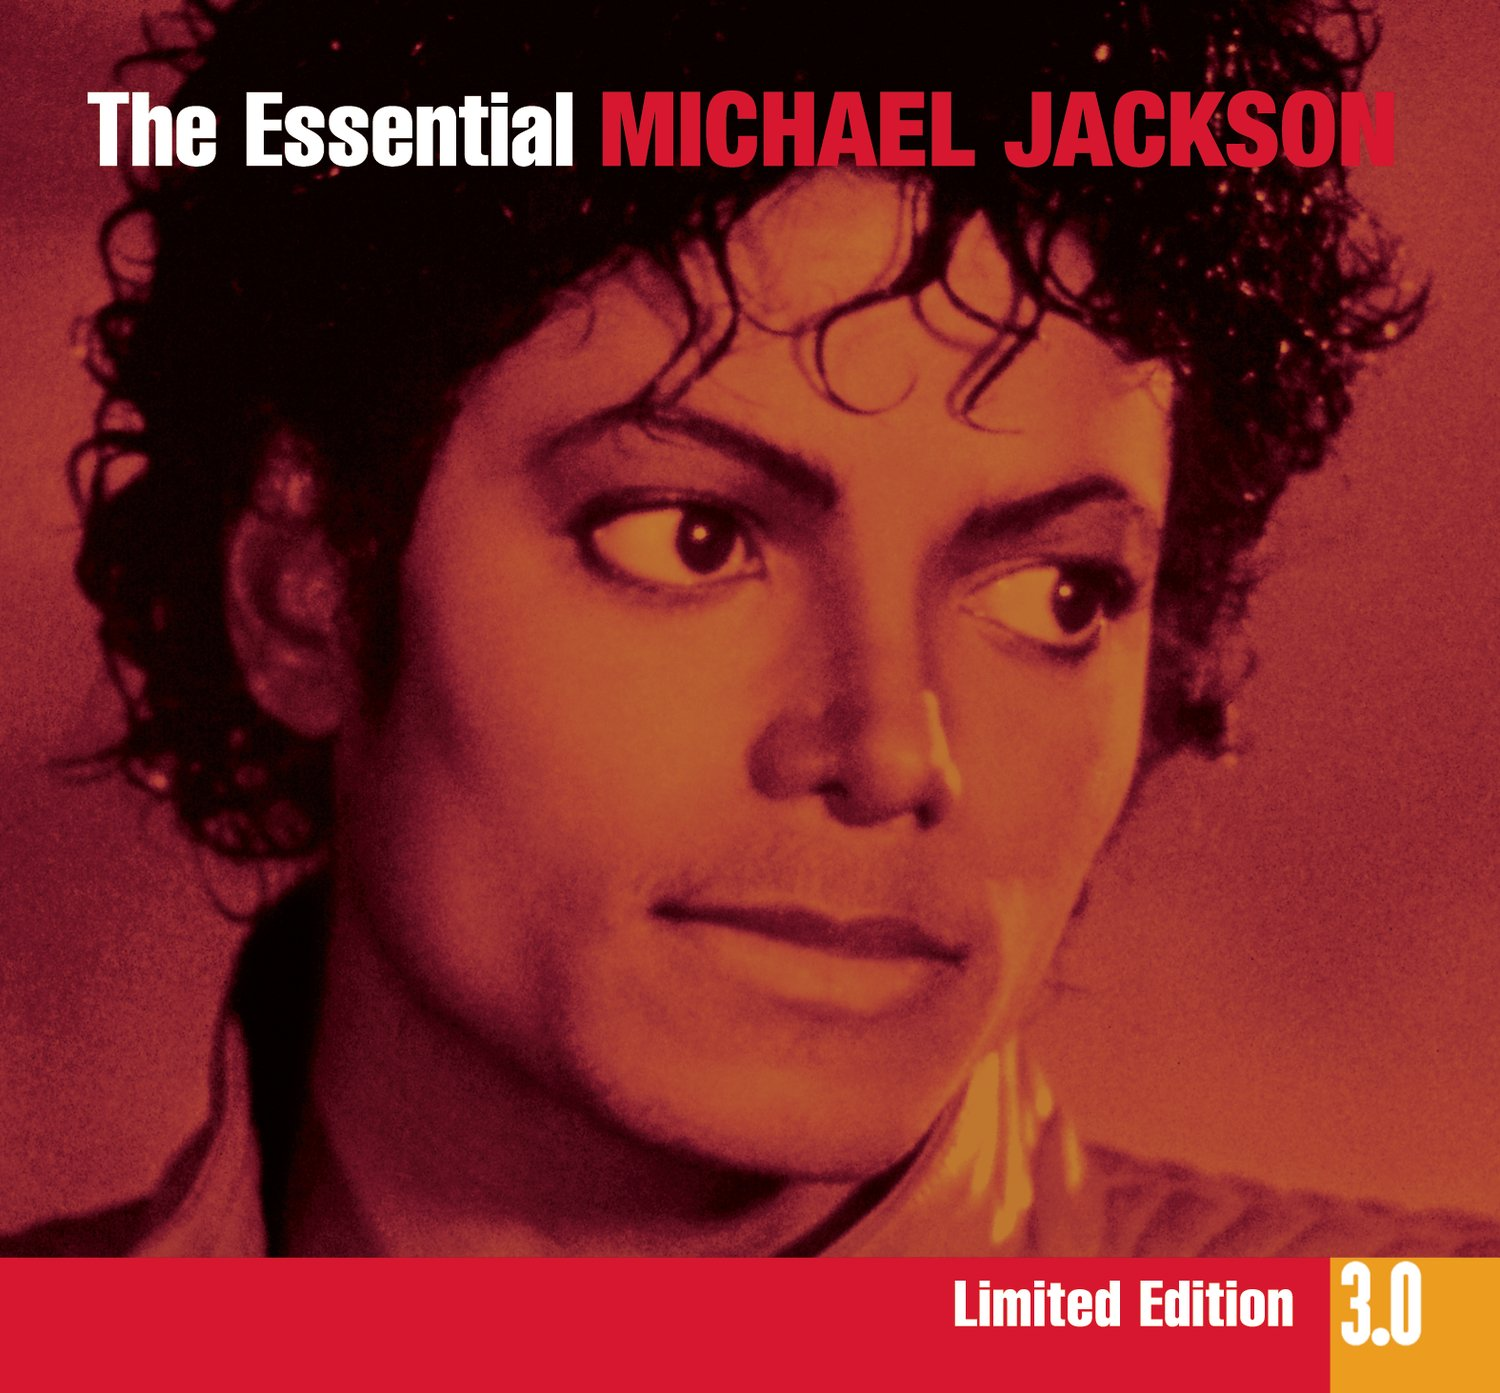 The Essential Michael Jackson 3.0 Imported ed.